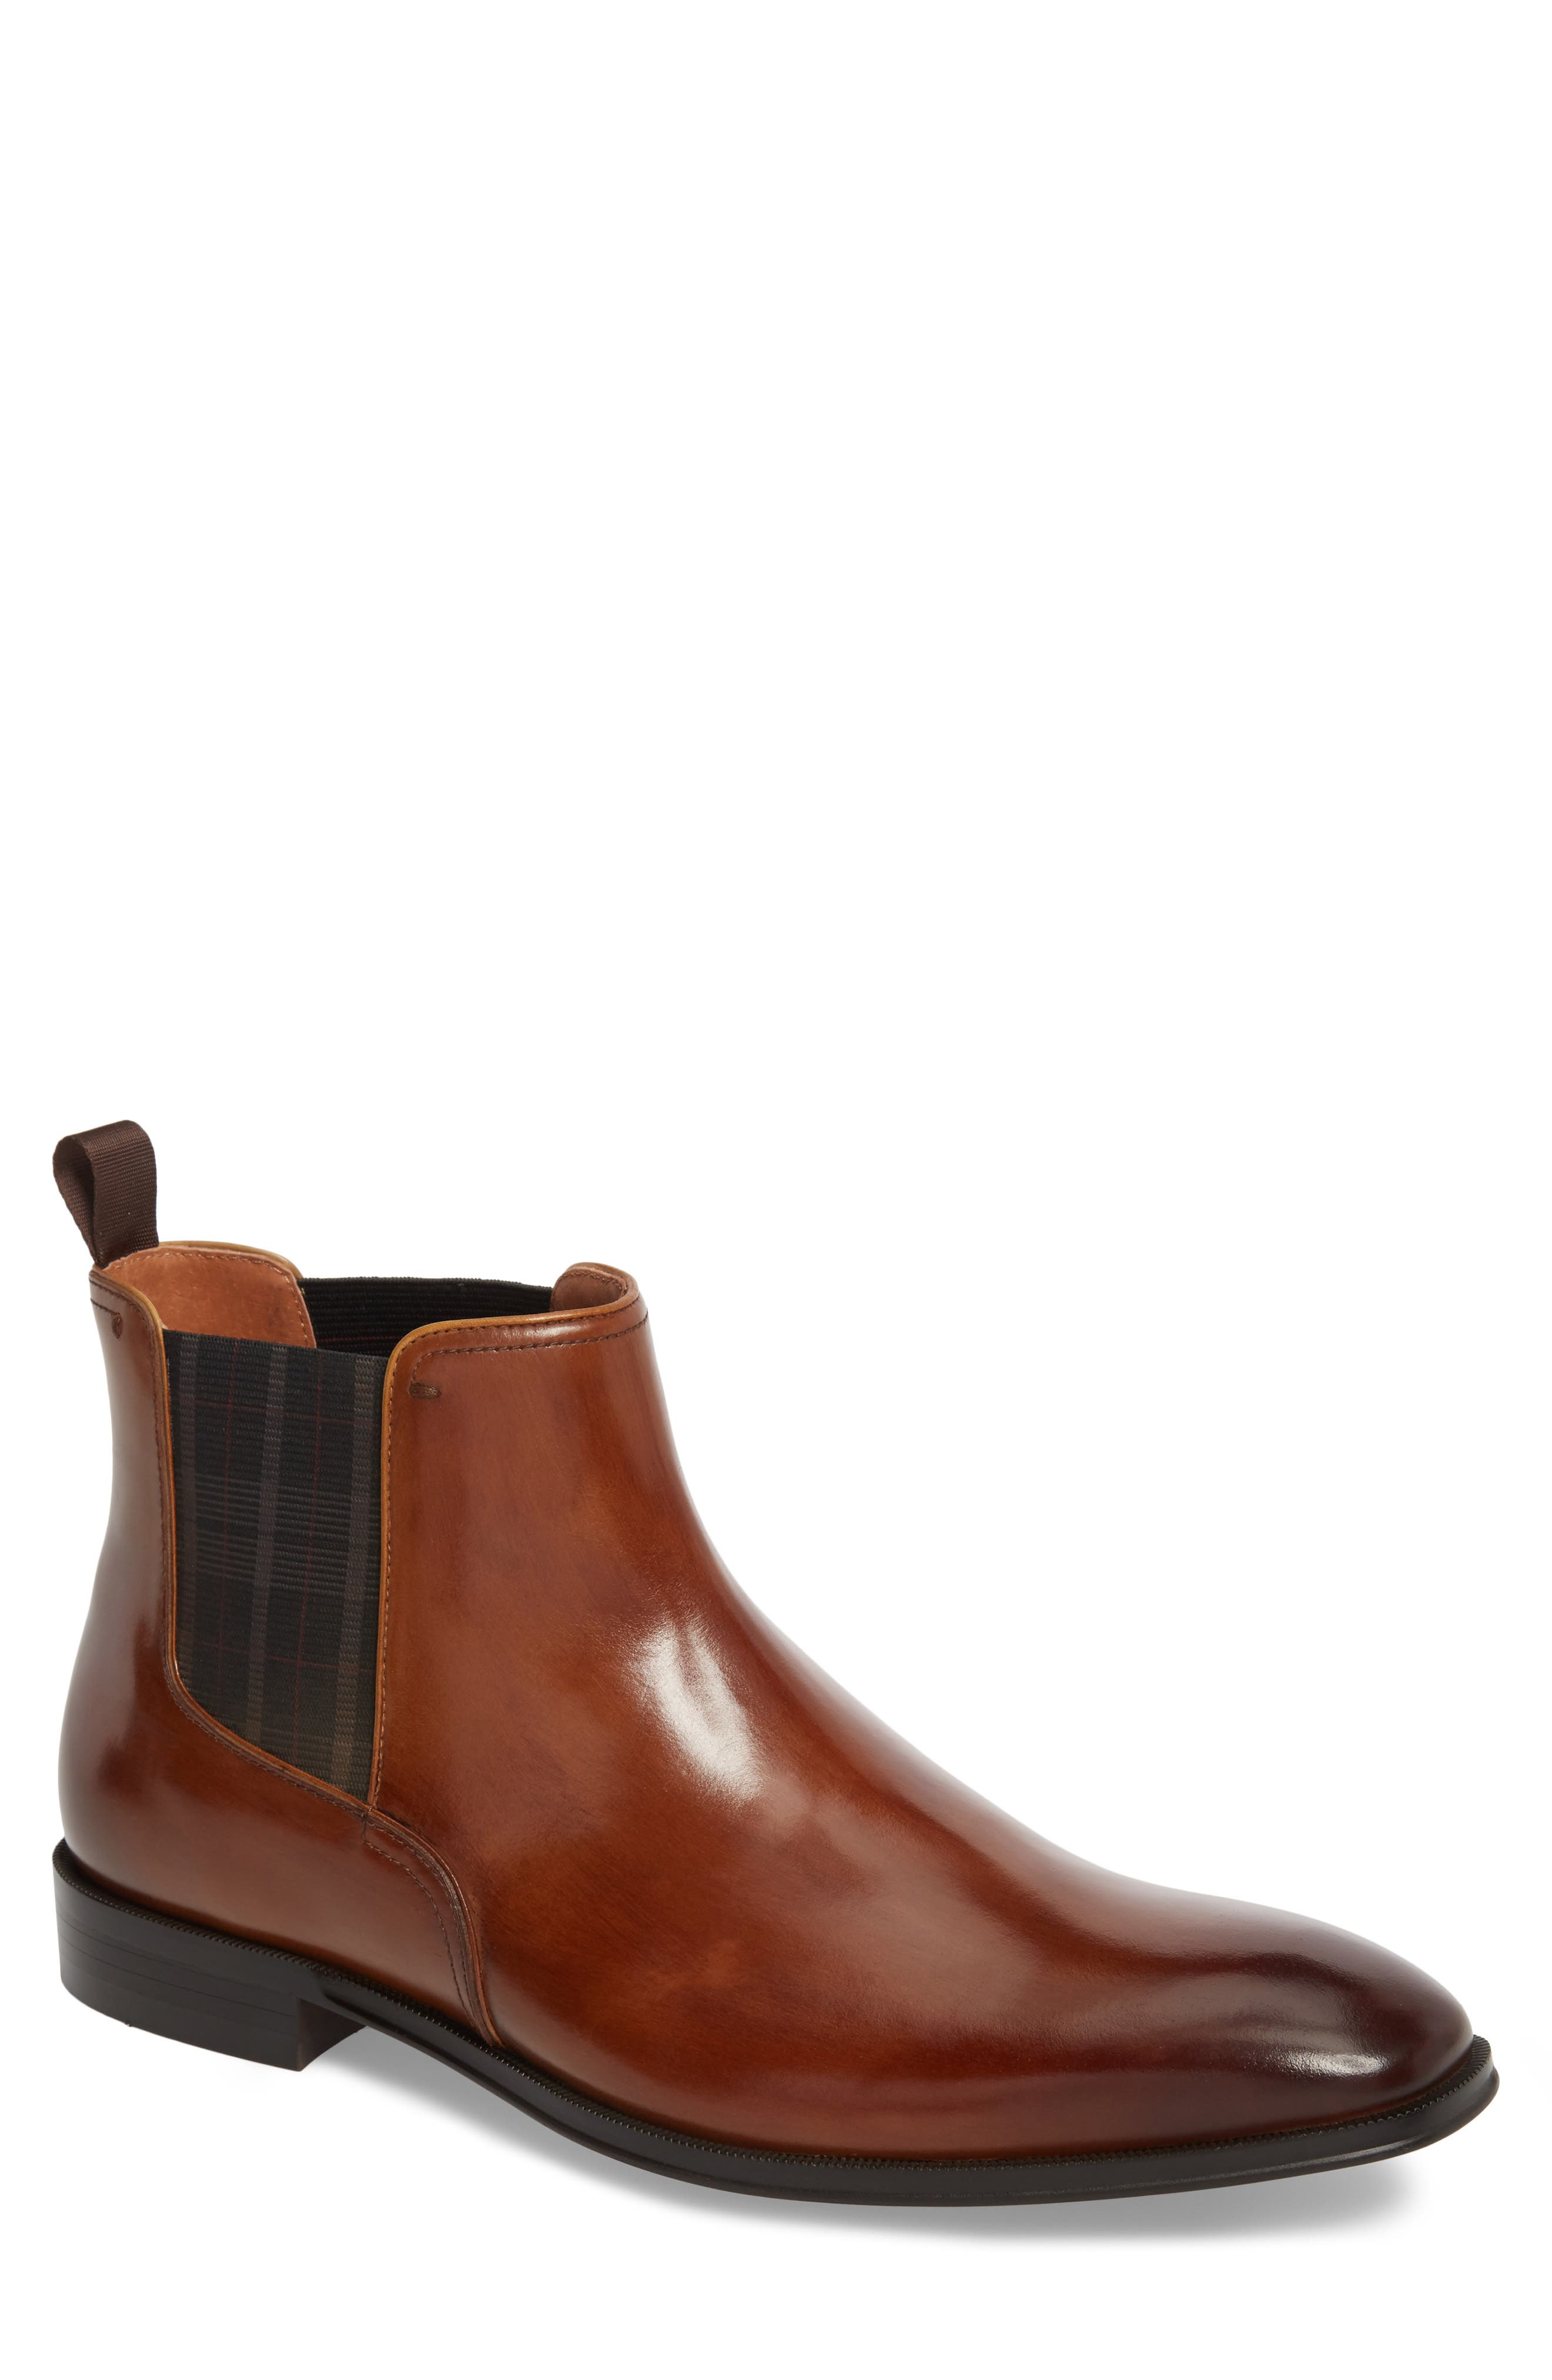 Belfast Chelsea Boot,                         Main,                         color, COGNAC LEATHER